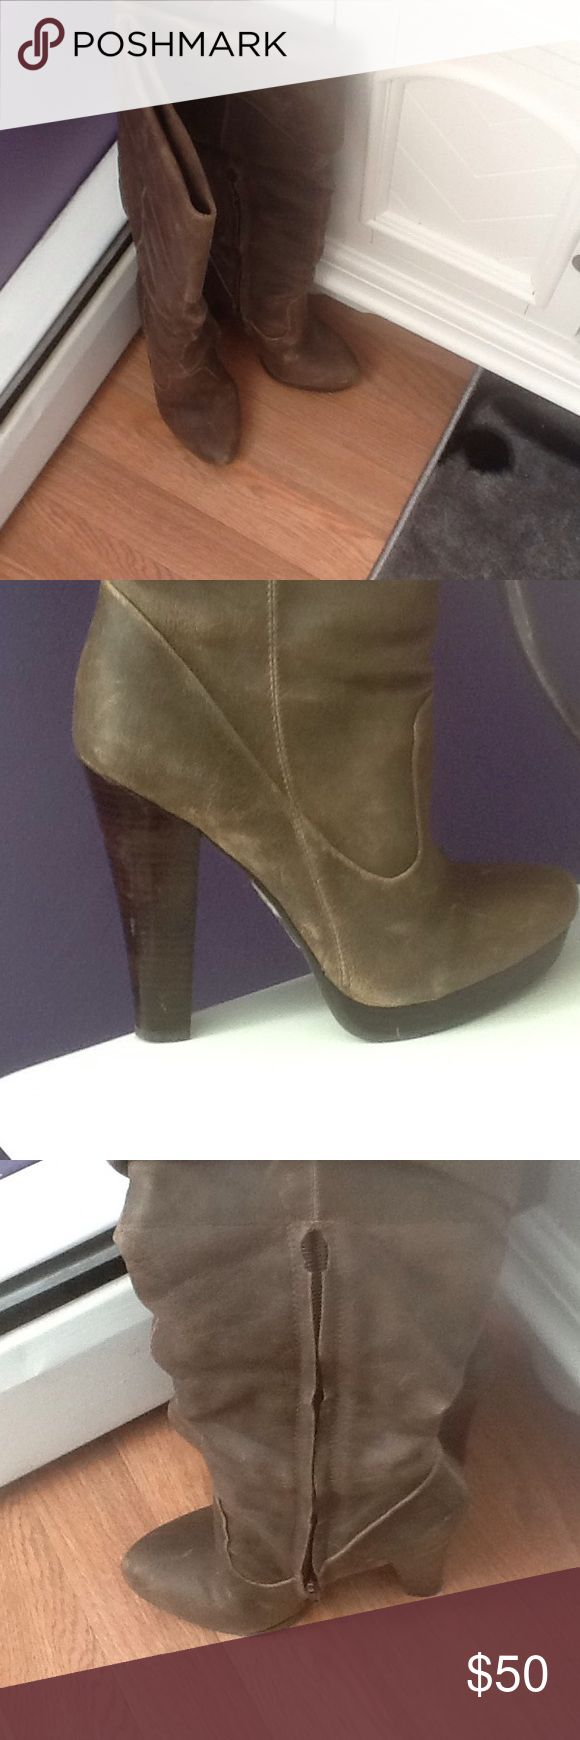 Jessica Simpson JS-tulip boots Jessica Simpson boots size 5.5M color Tobacco waxy gamble distressed finish. Jessica Simpson Shoes Heeled Boots